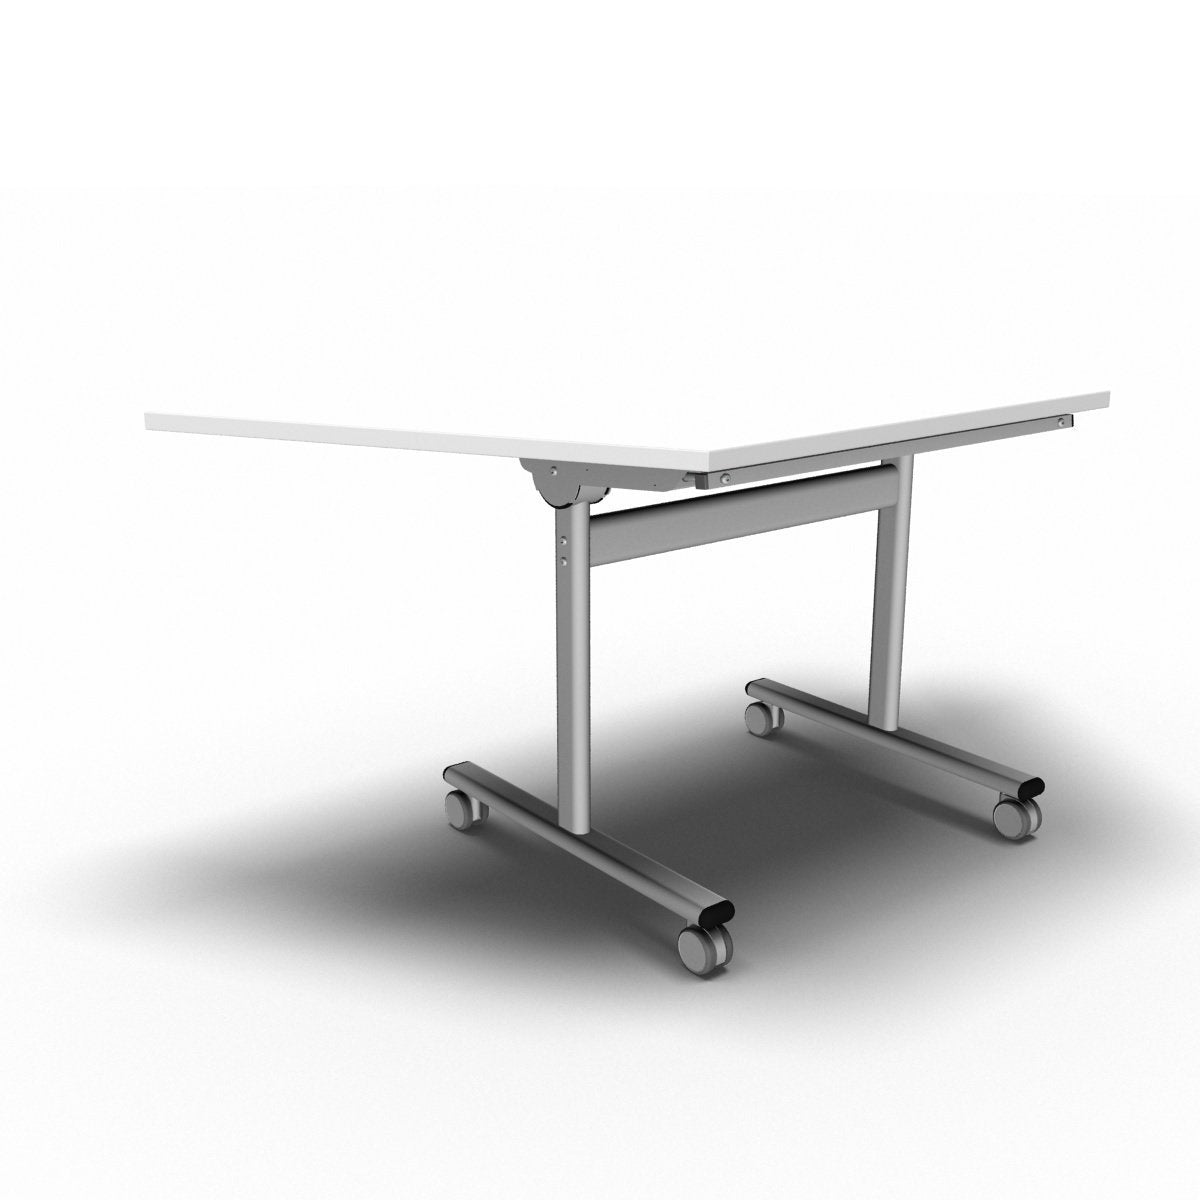 Table 1600 x 800 x 720mm / Trapezoidal / White Synergy Flip Top Tables